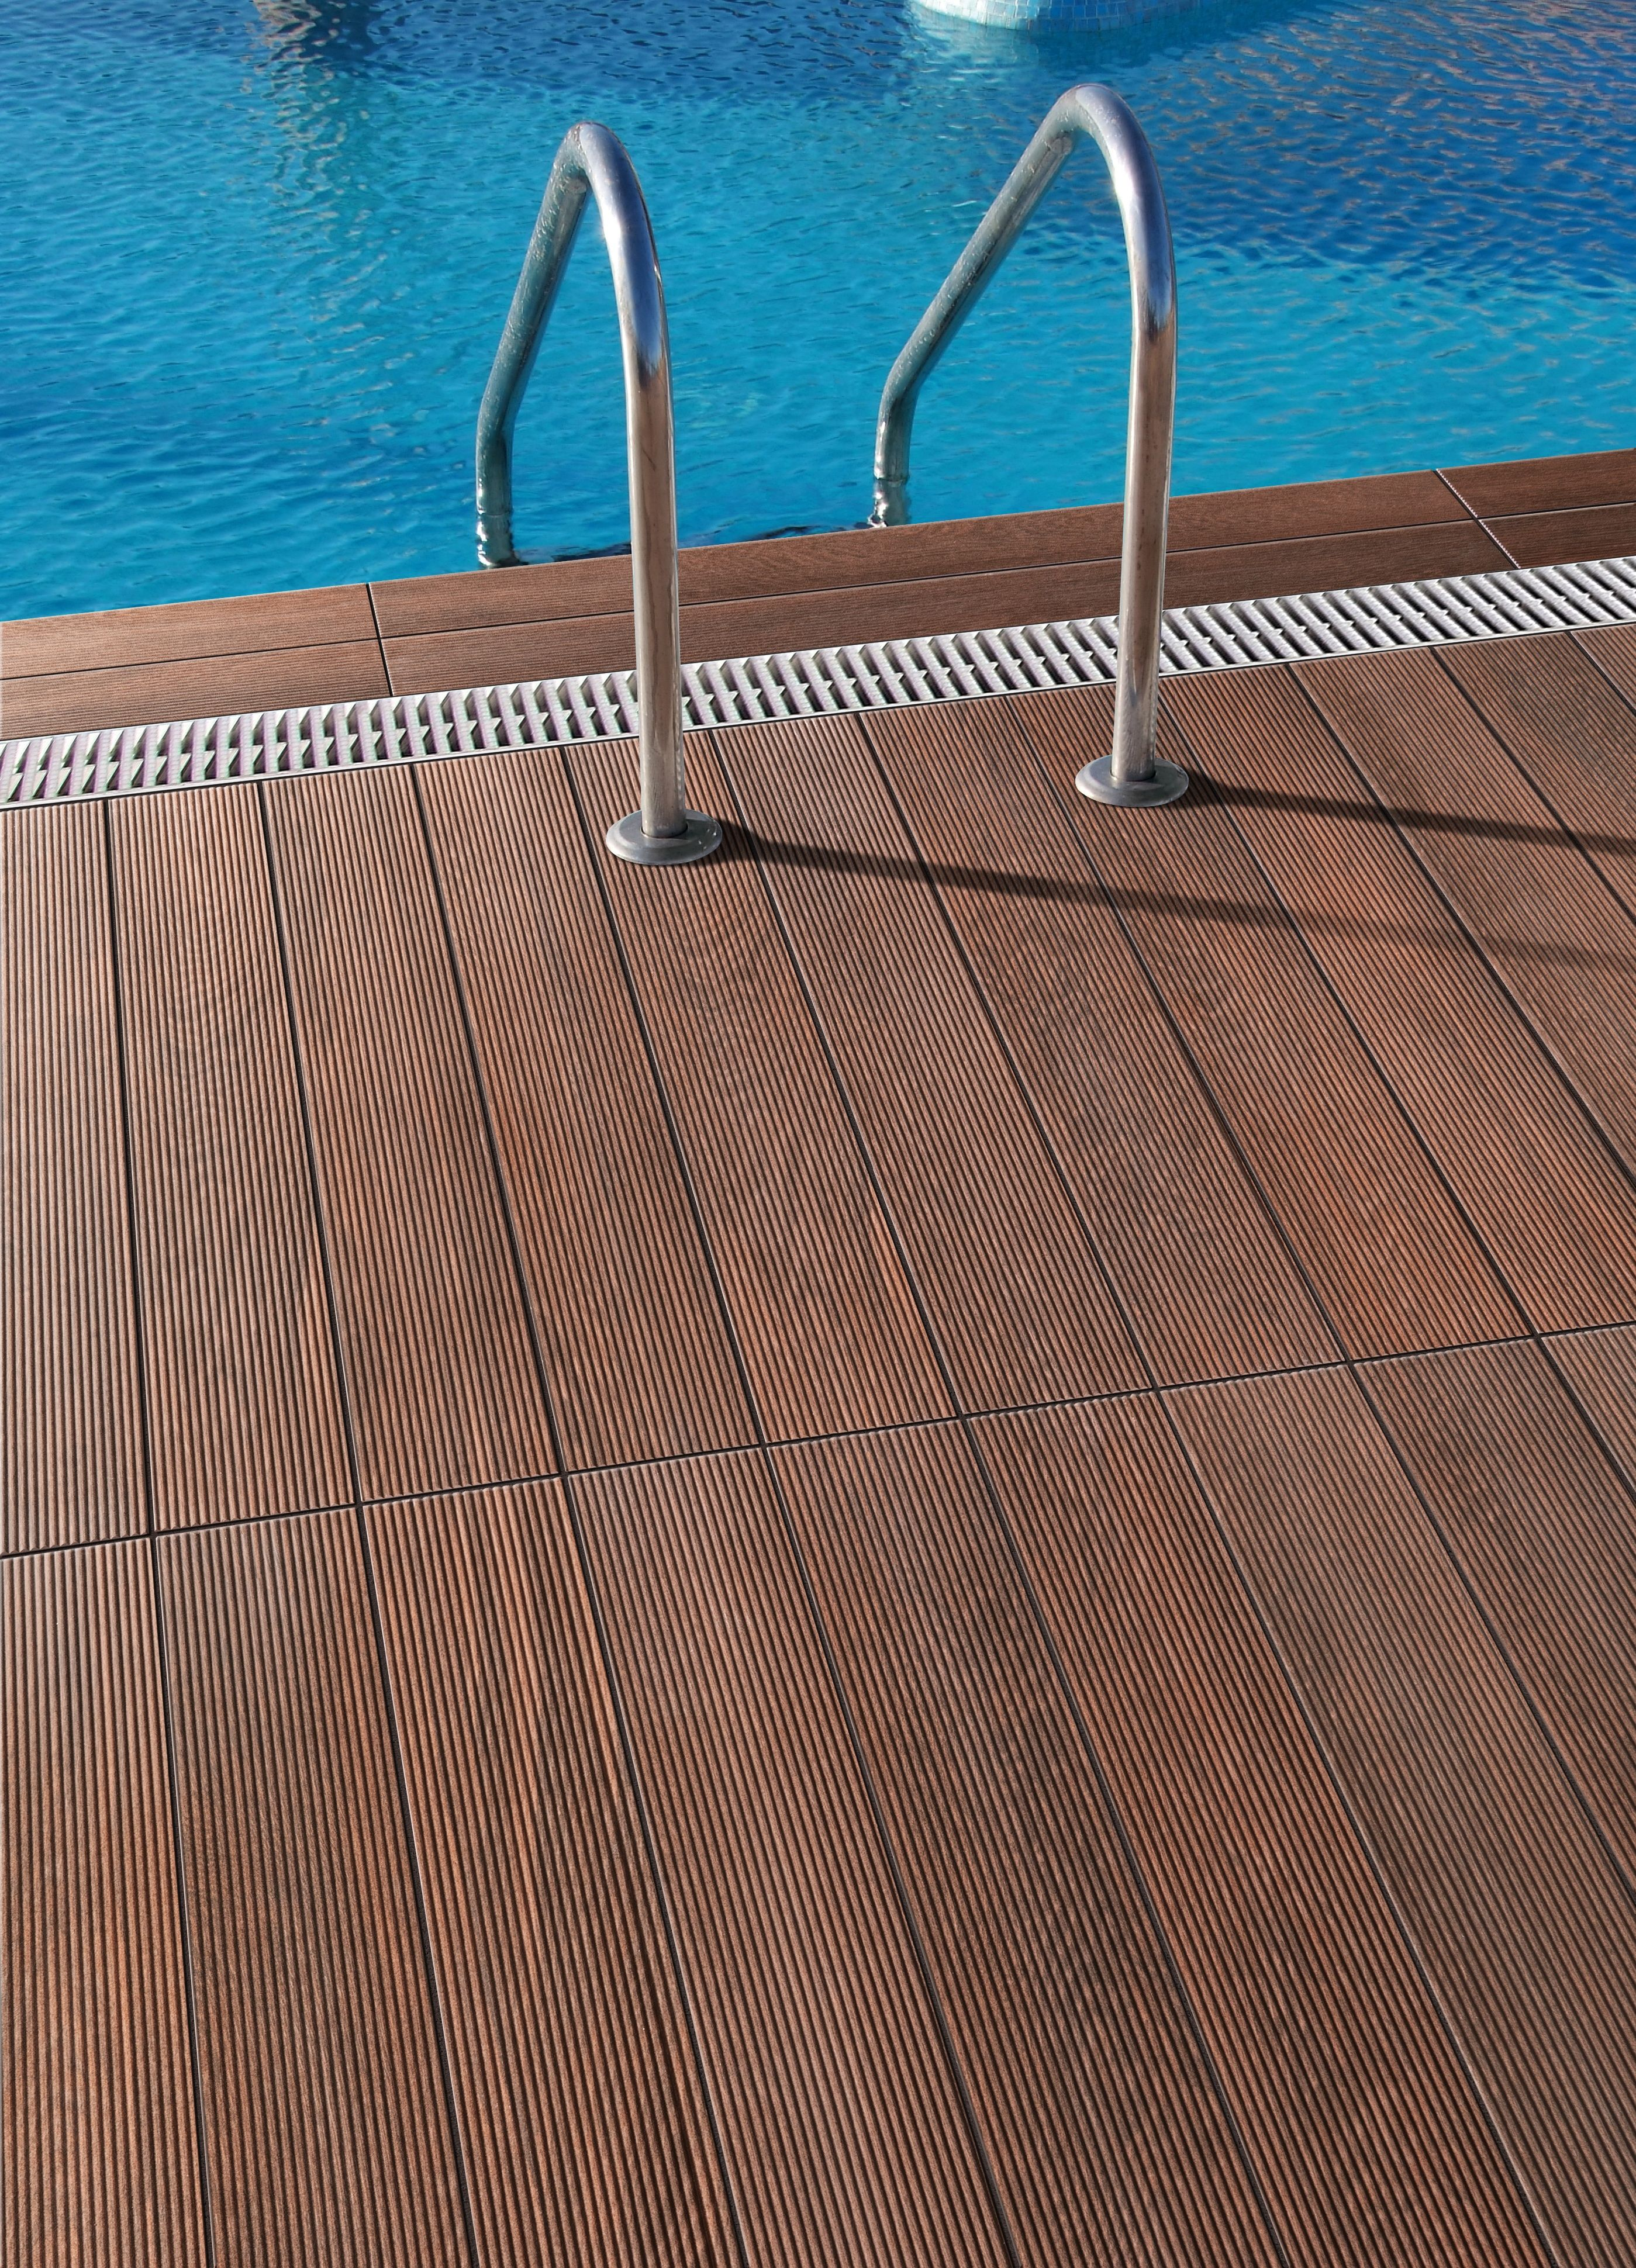 Porcelain Wood Look Tiles For Outdoor Decks Pinterest